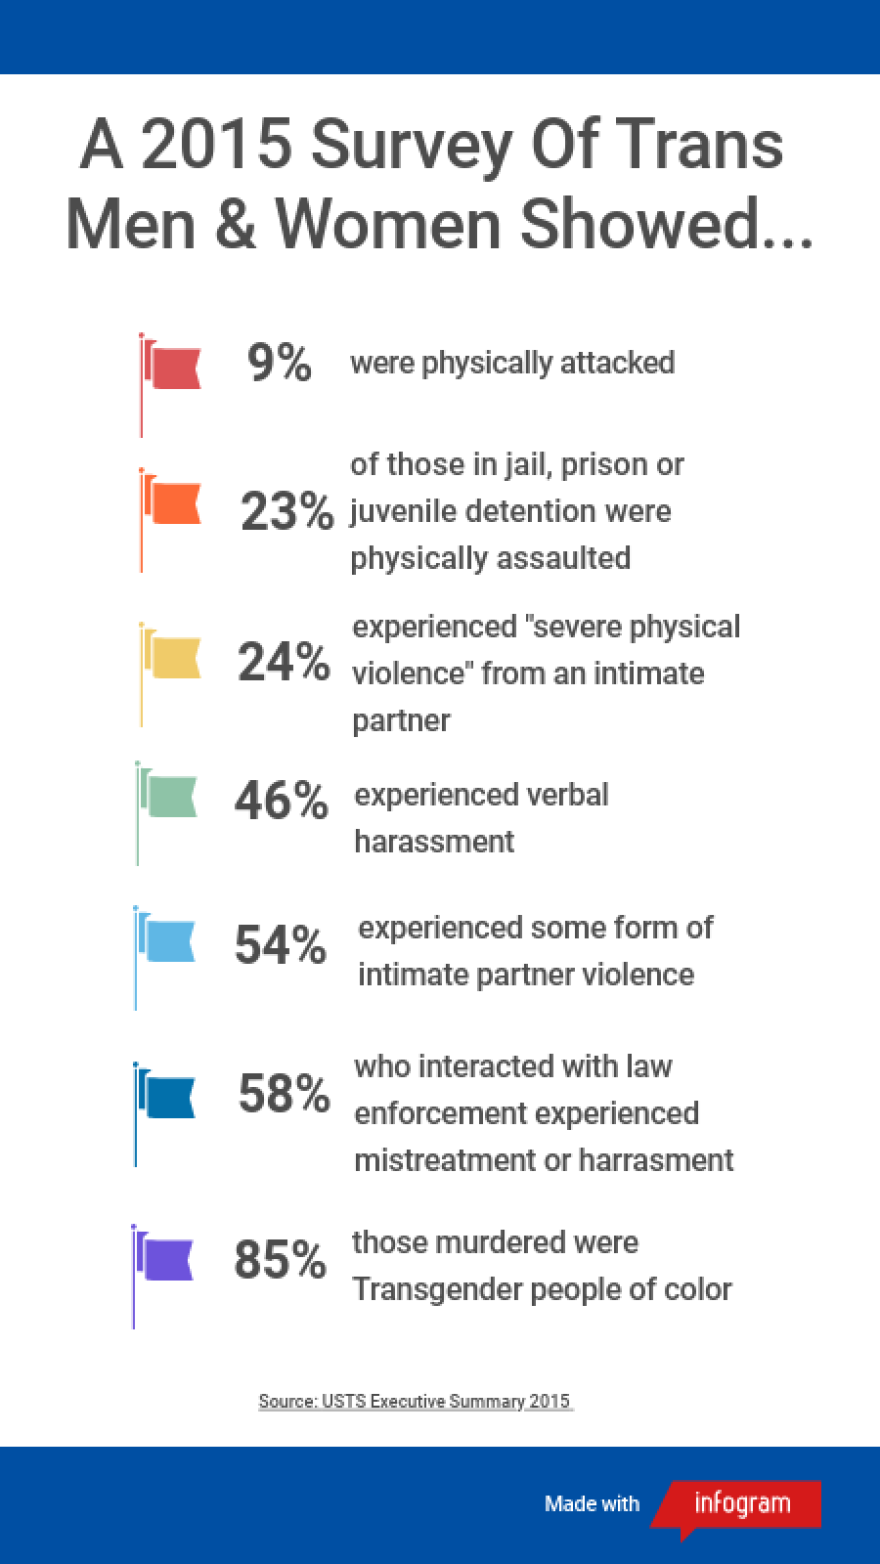 survey-of-trans-men-and-women.png